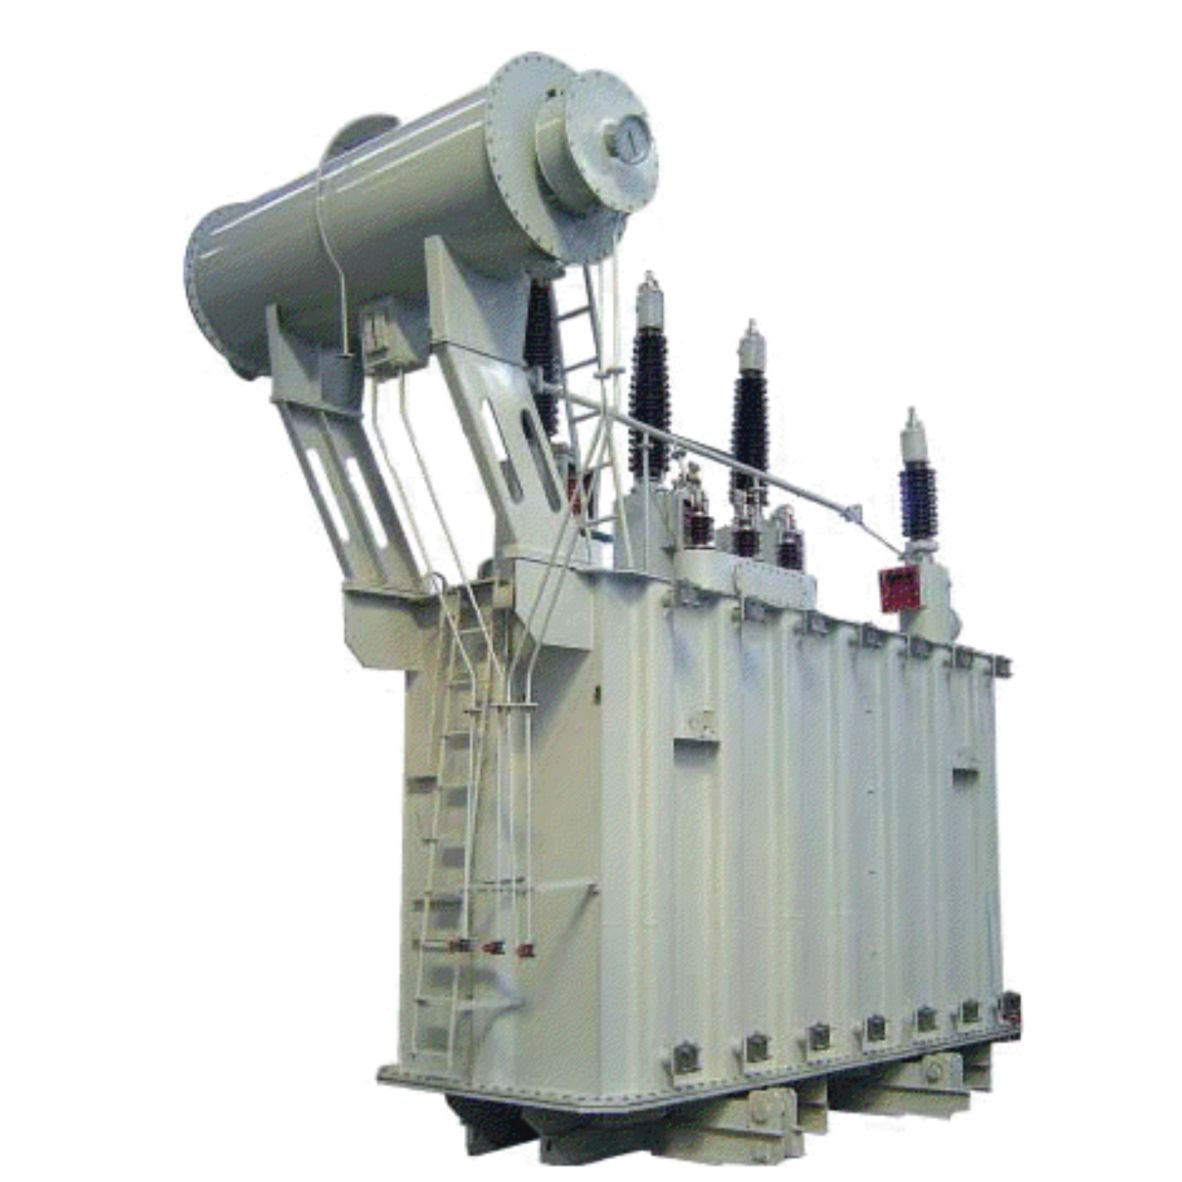 110-150kV Three-phase two-windings oil-immersed power transformers ТМ, ТД type